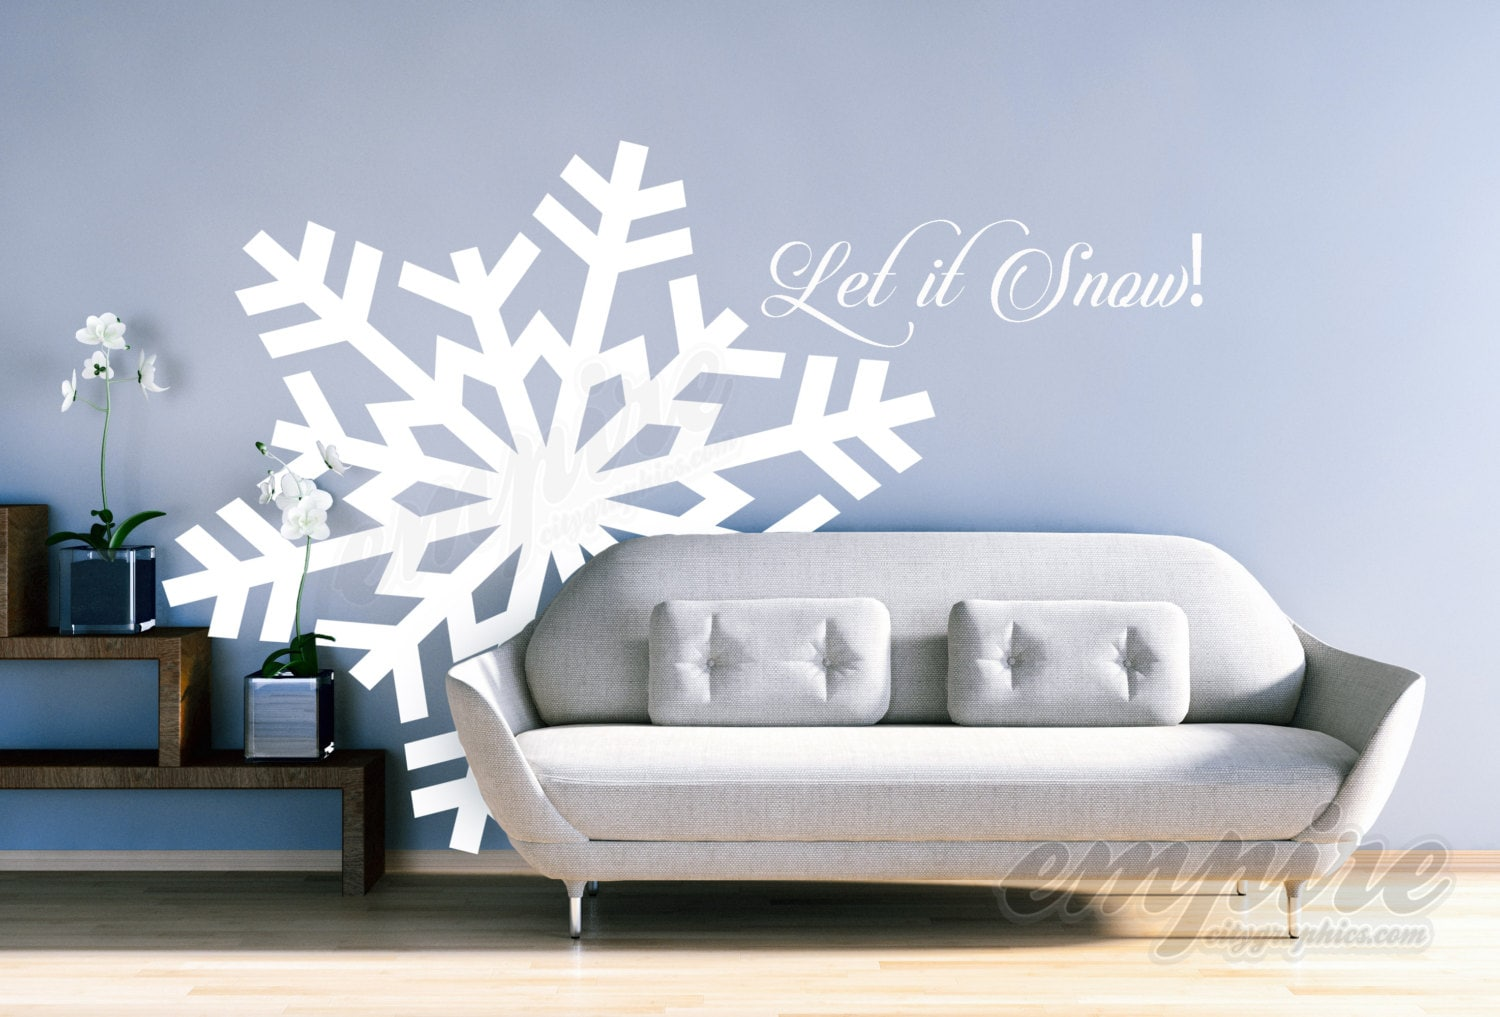 Large snowflake decals giant snowflakes holiday decals let it large snowflake decals giant snowflakes holiday decals let it snow decal frozen decals snow wall decals let it go decals frozen decor amipublicfo Choice Image